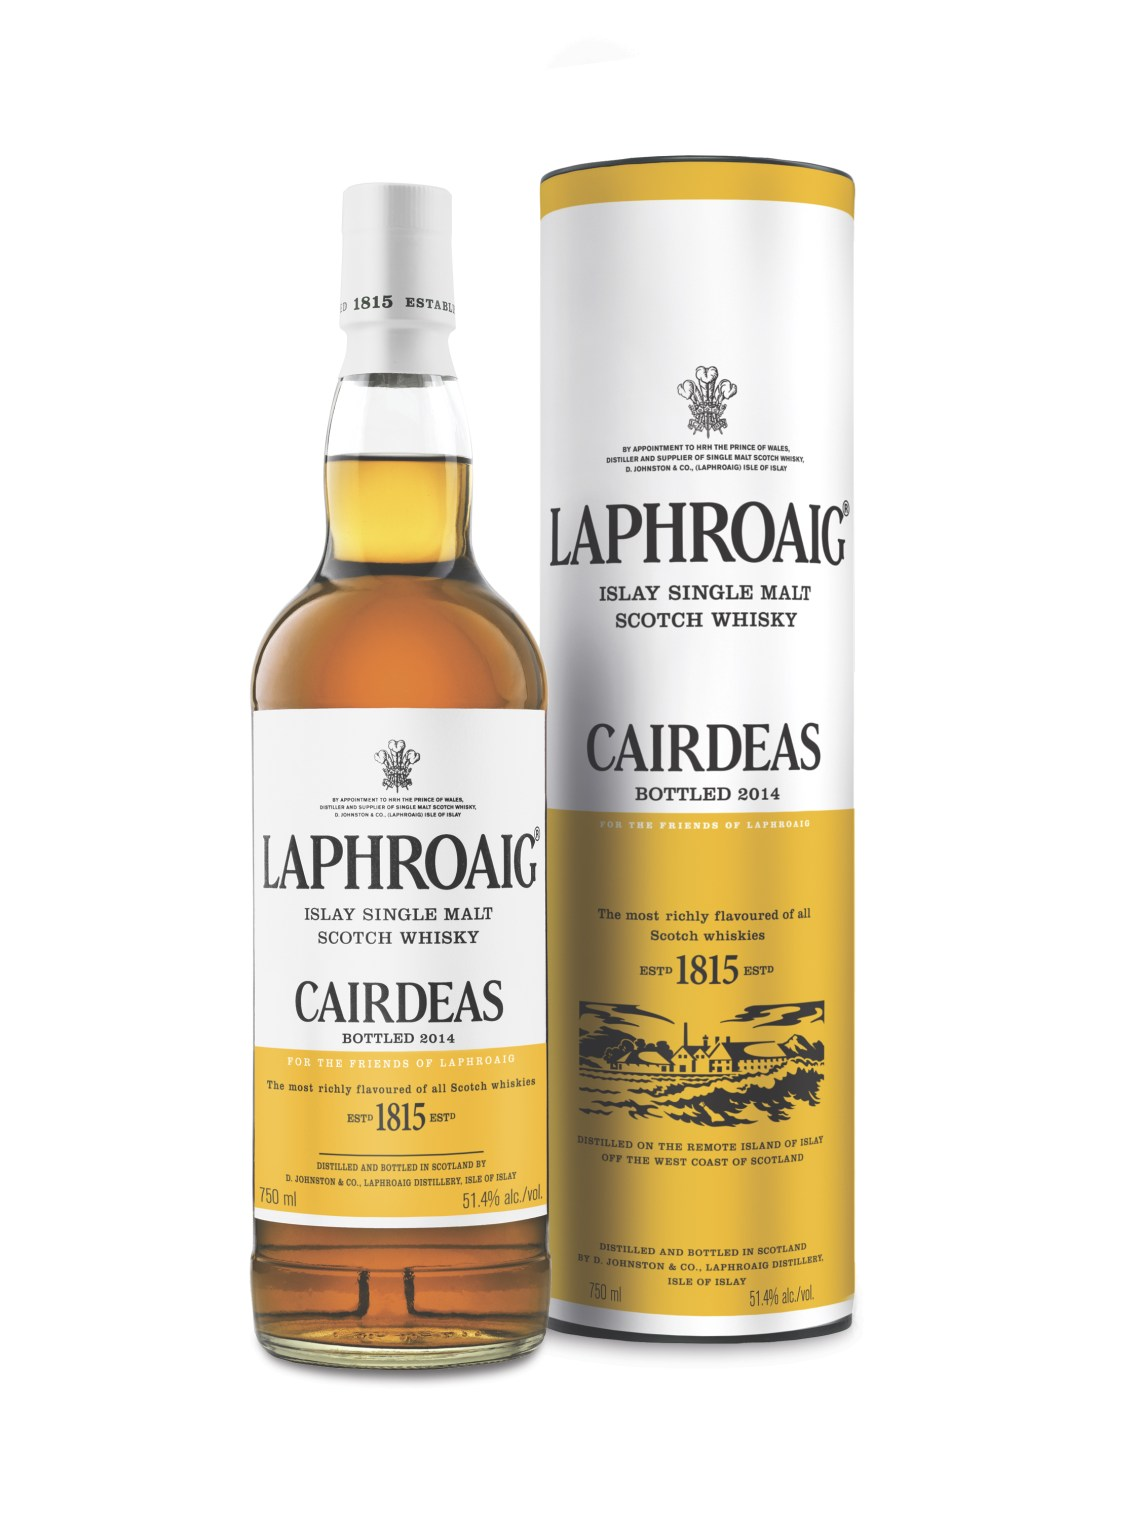 Laphroaig Cairdeas Amontillado Edition 2014